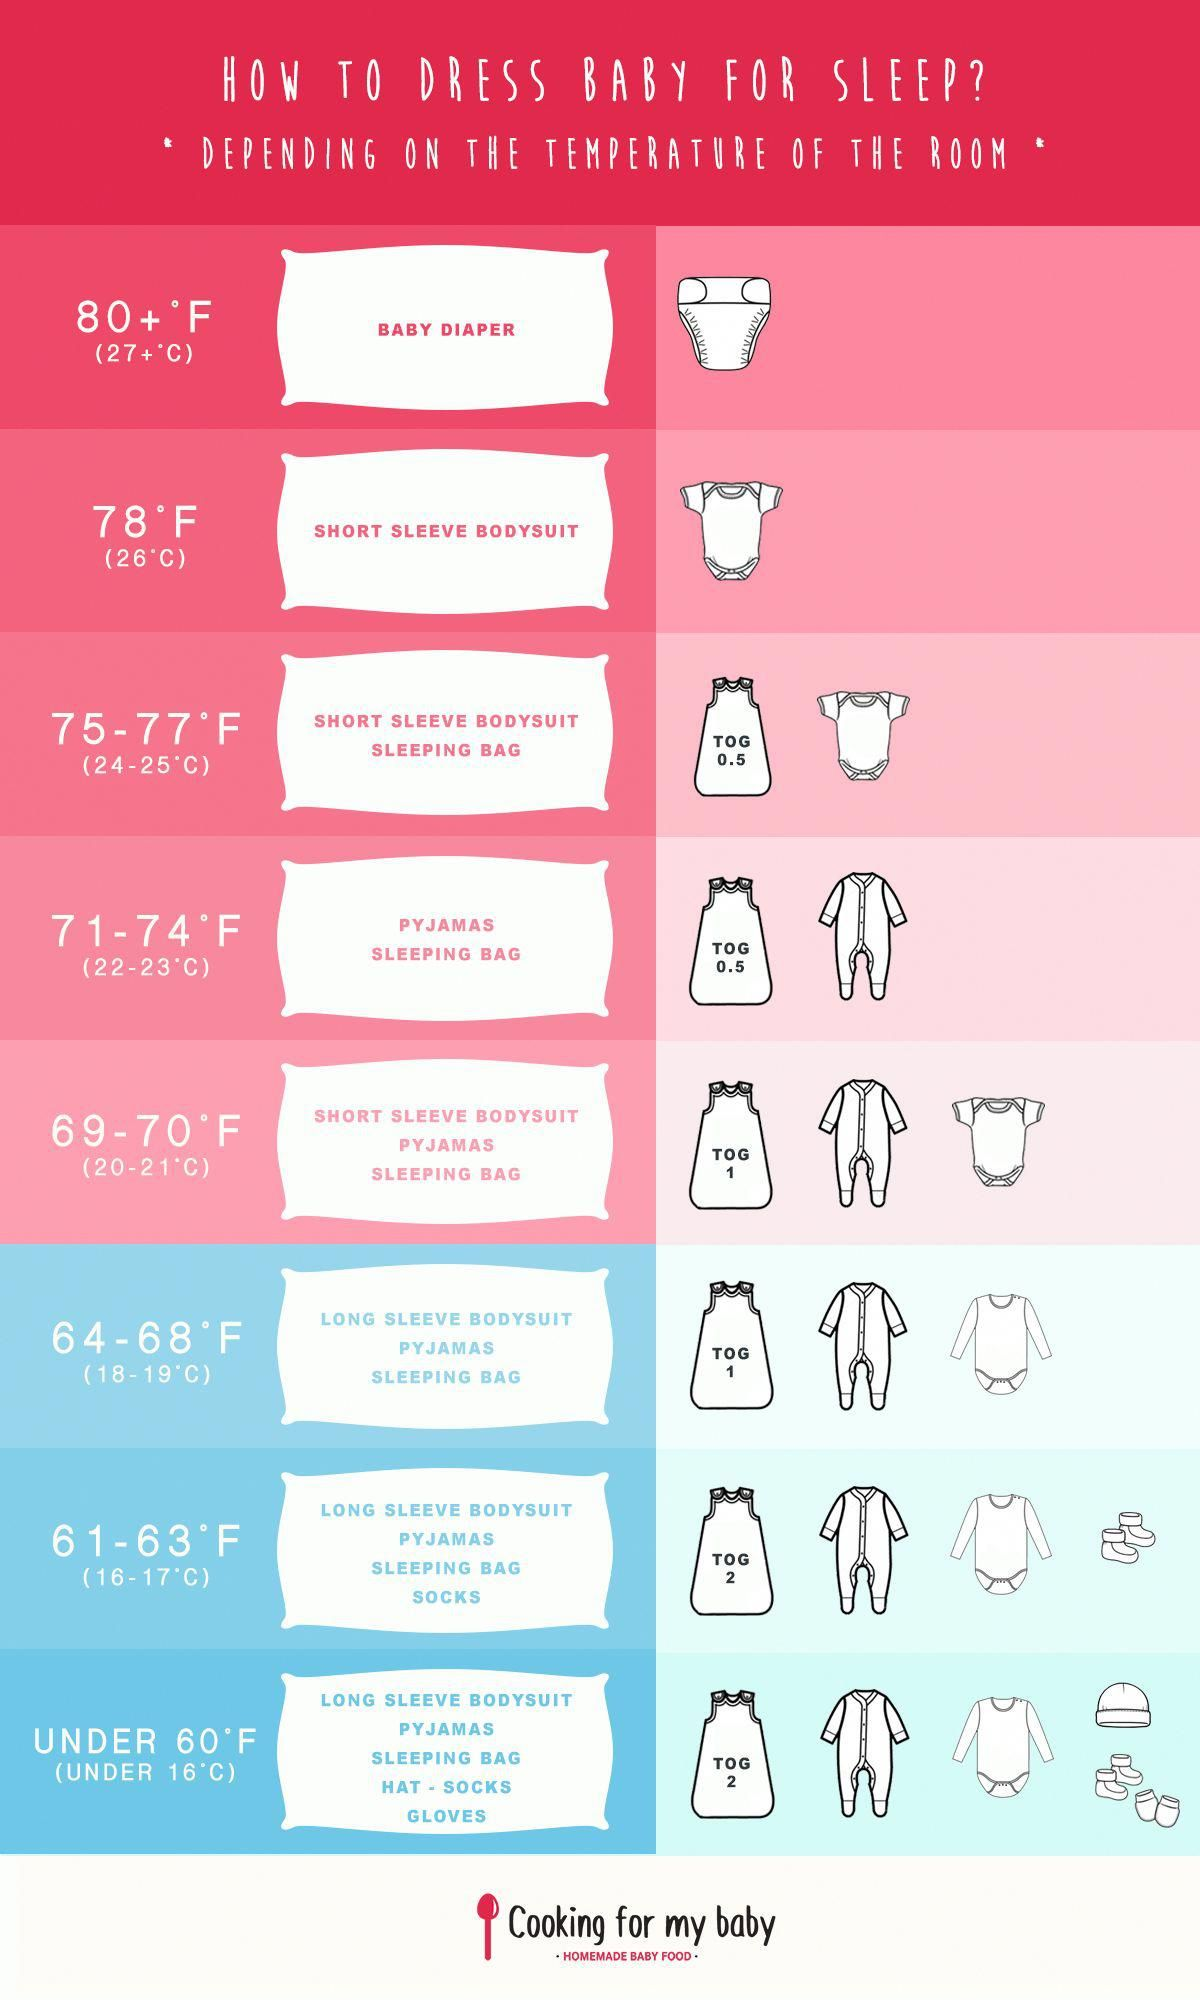 what to dress baby in for sleep at night depending on